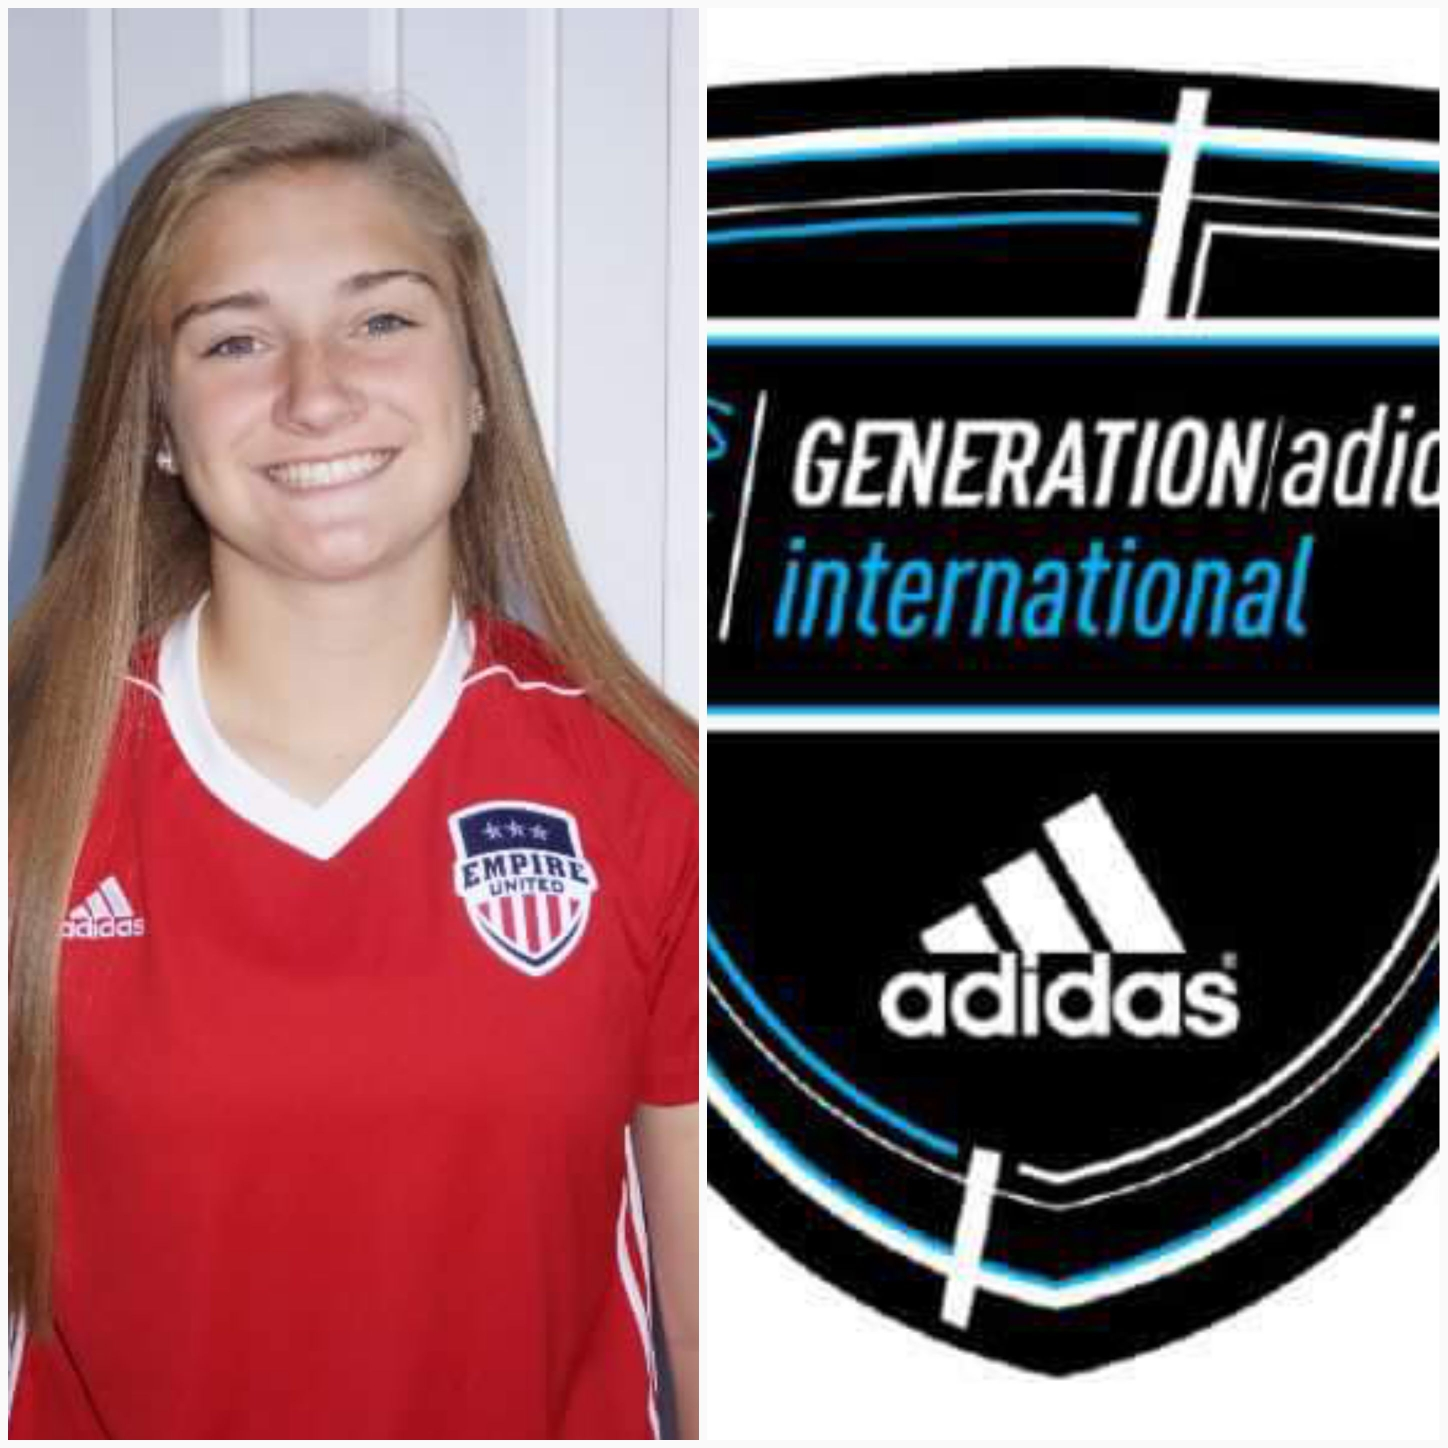 Empire United's Grace Allen secures spot with 2017 generation adidas international